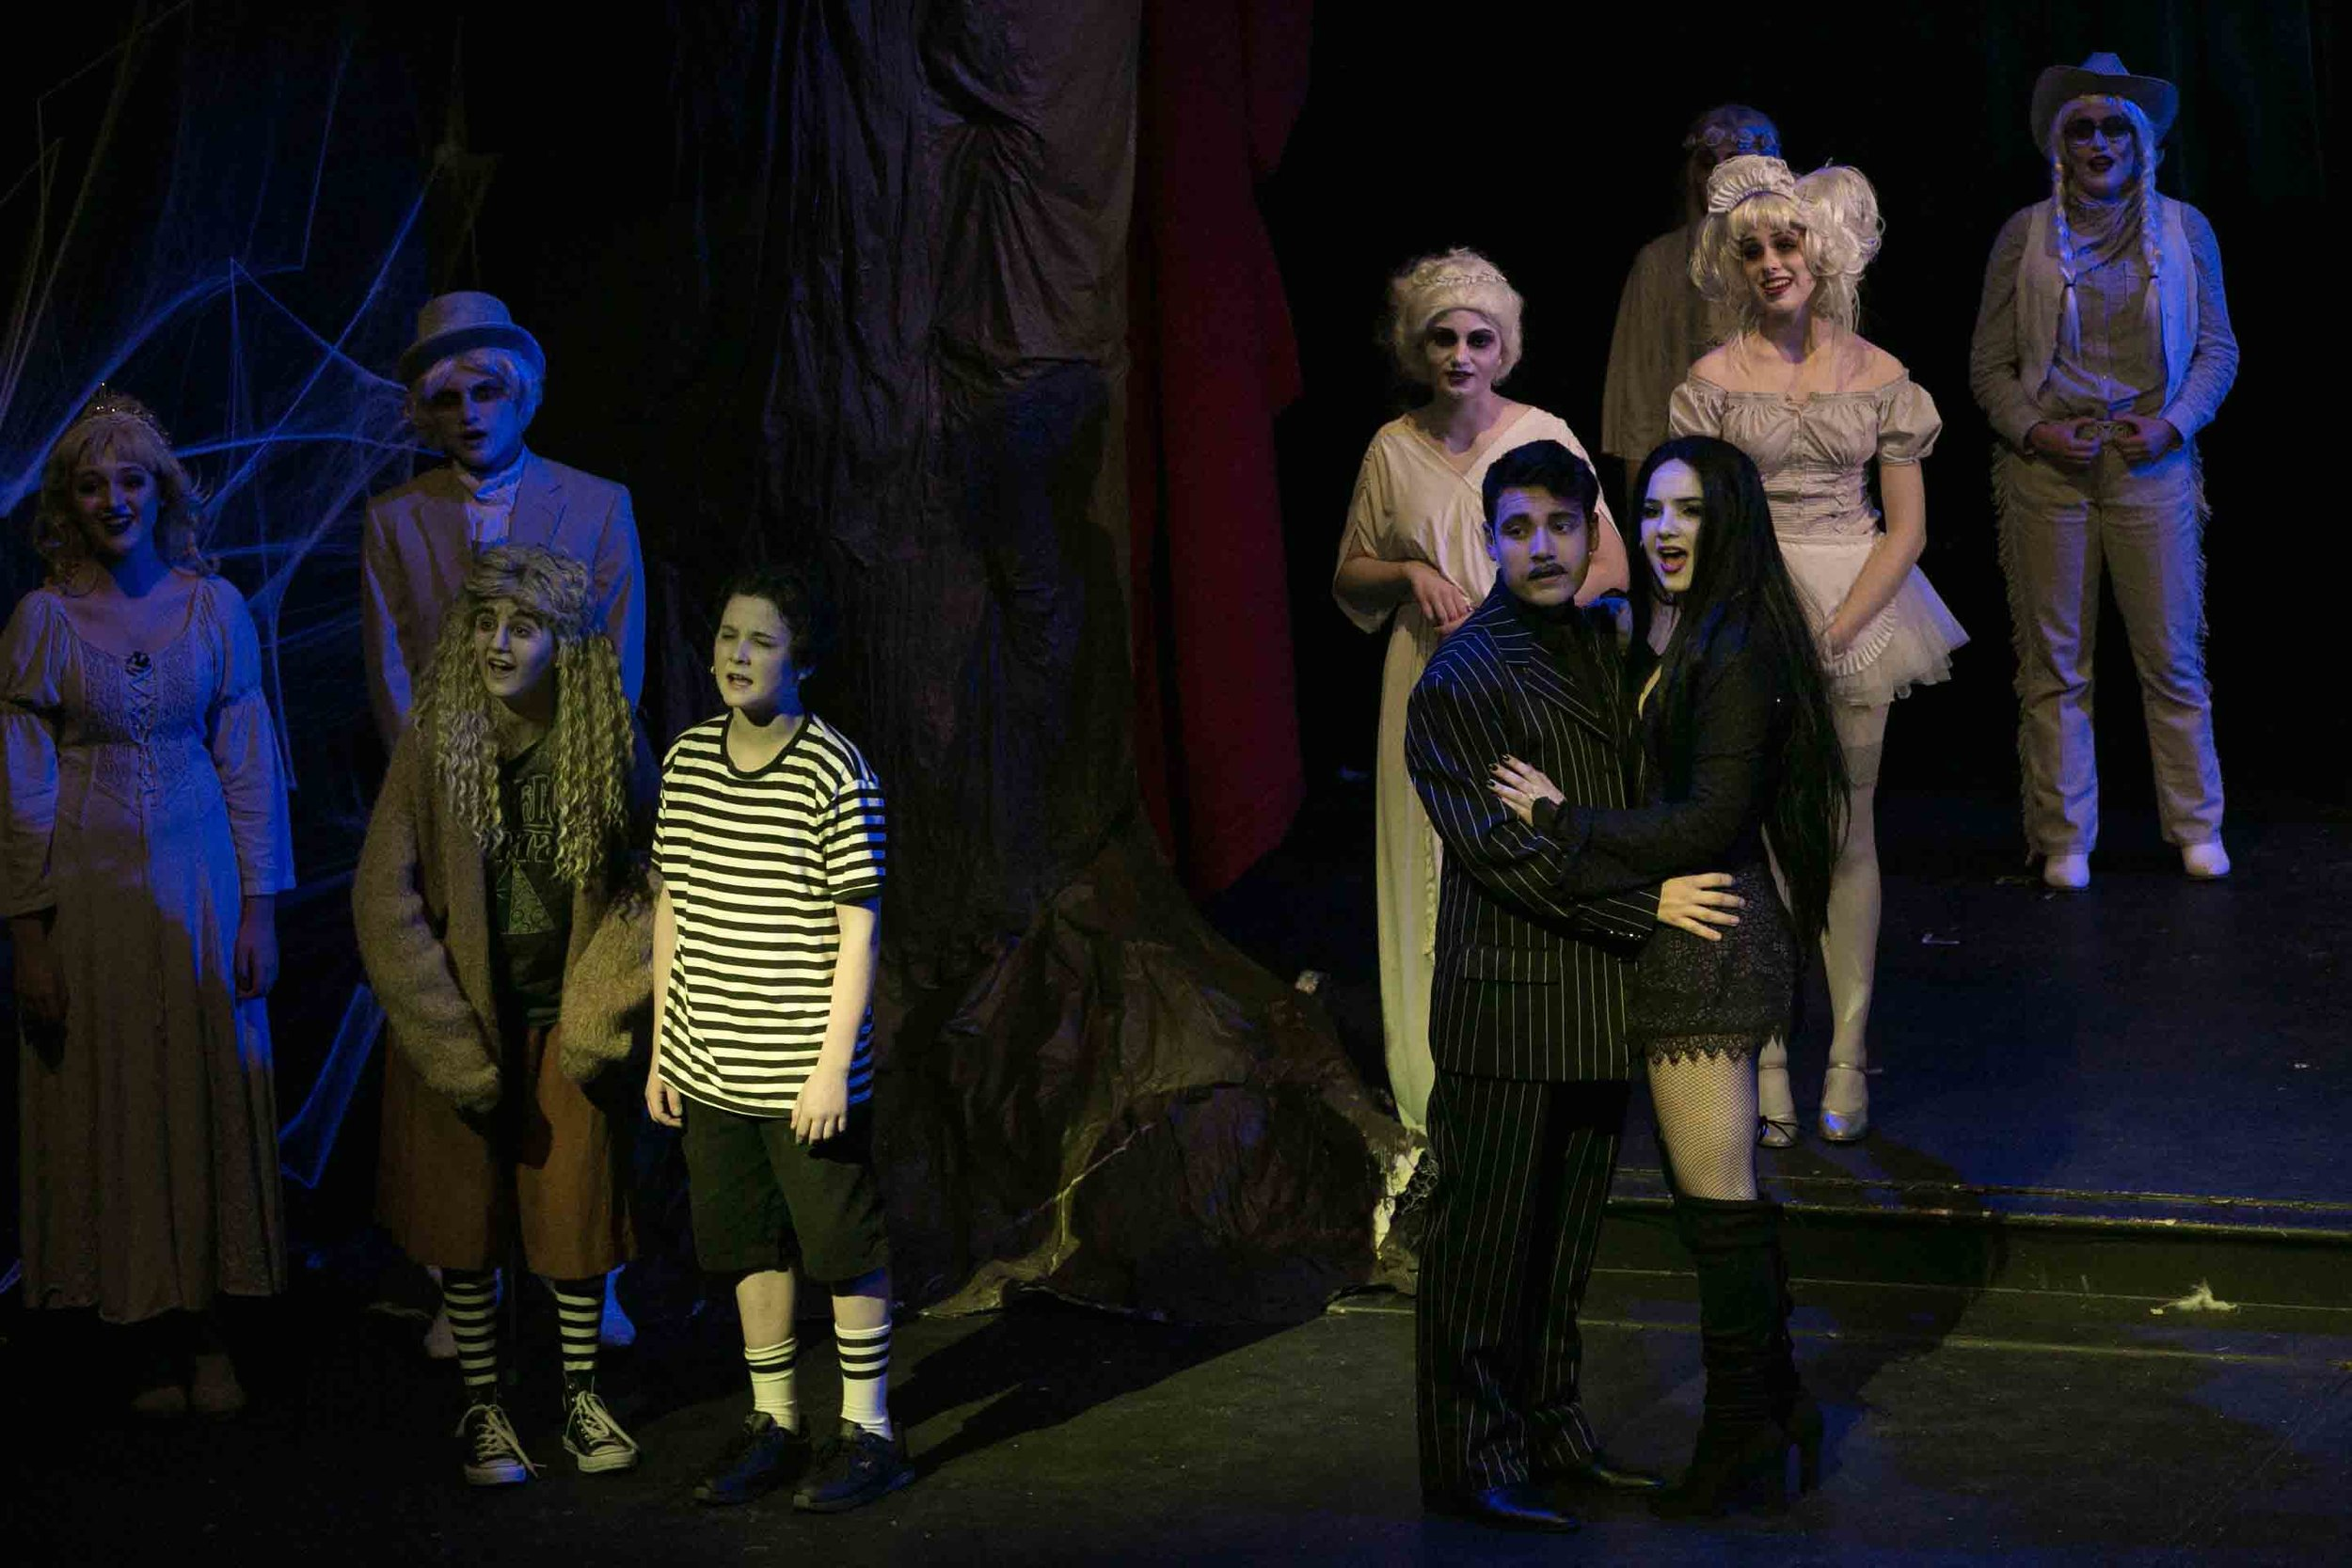 6-19-16 Addams Family Creepy Cast 0308.jpg